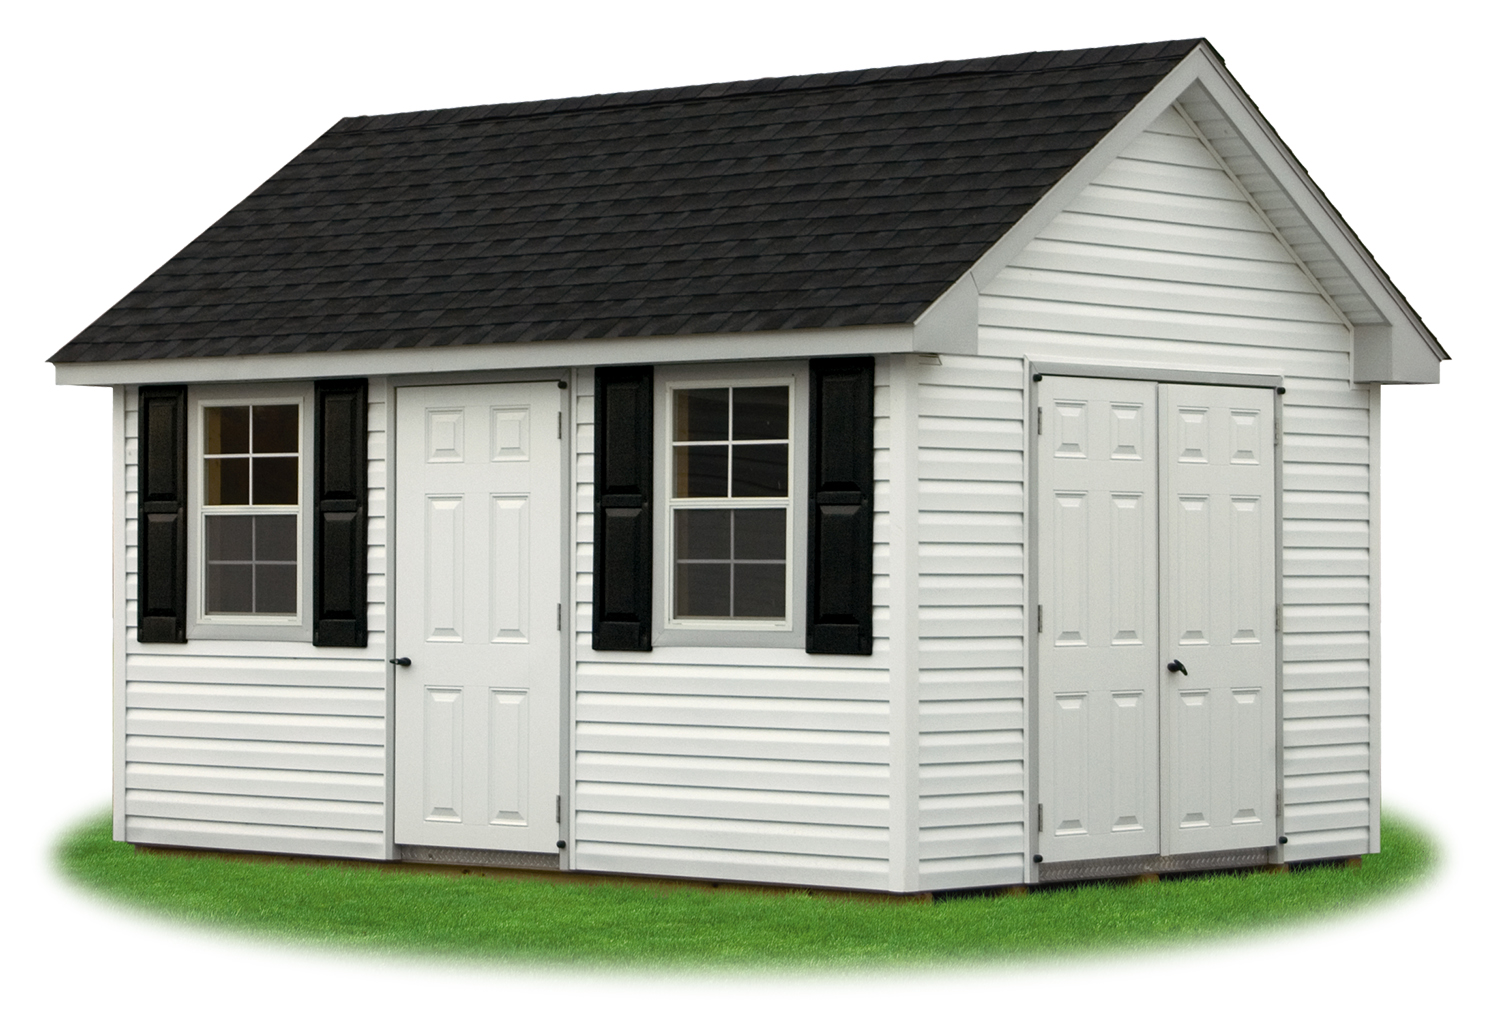 10 X 14 Vinyl Cape Cod Storage Shed   White, Grey And Charcoal